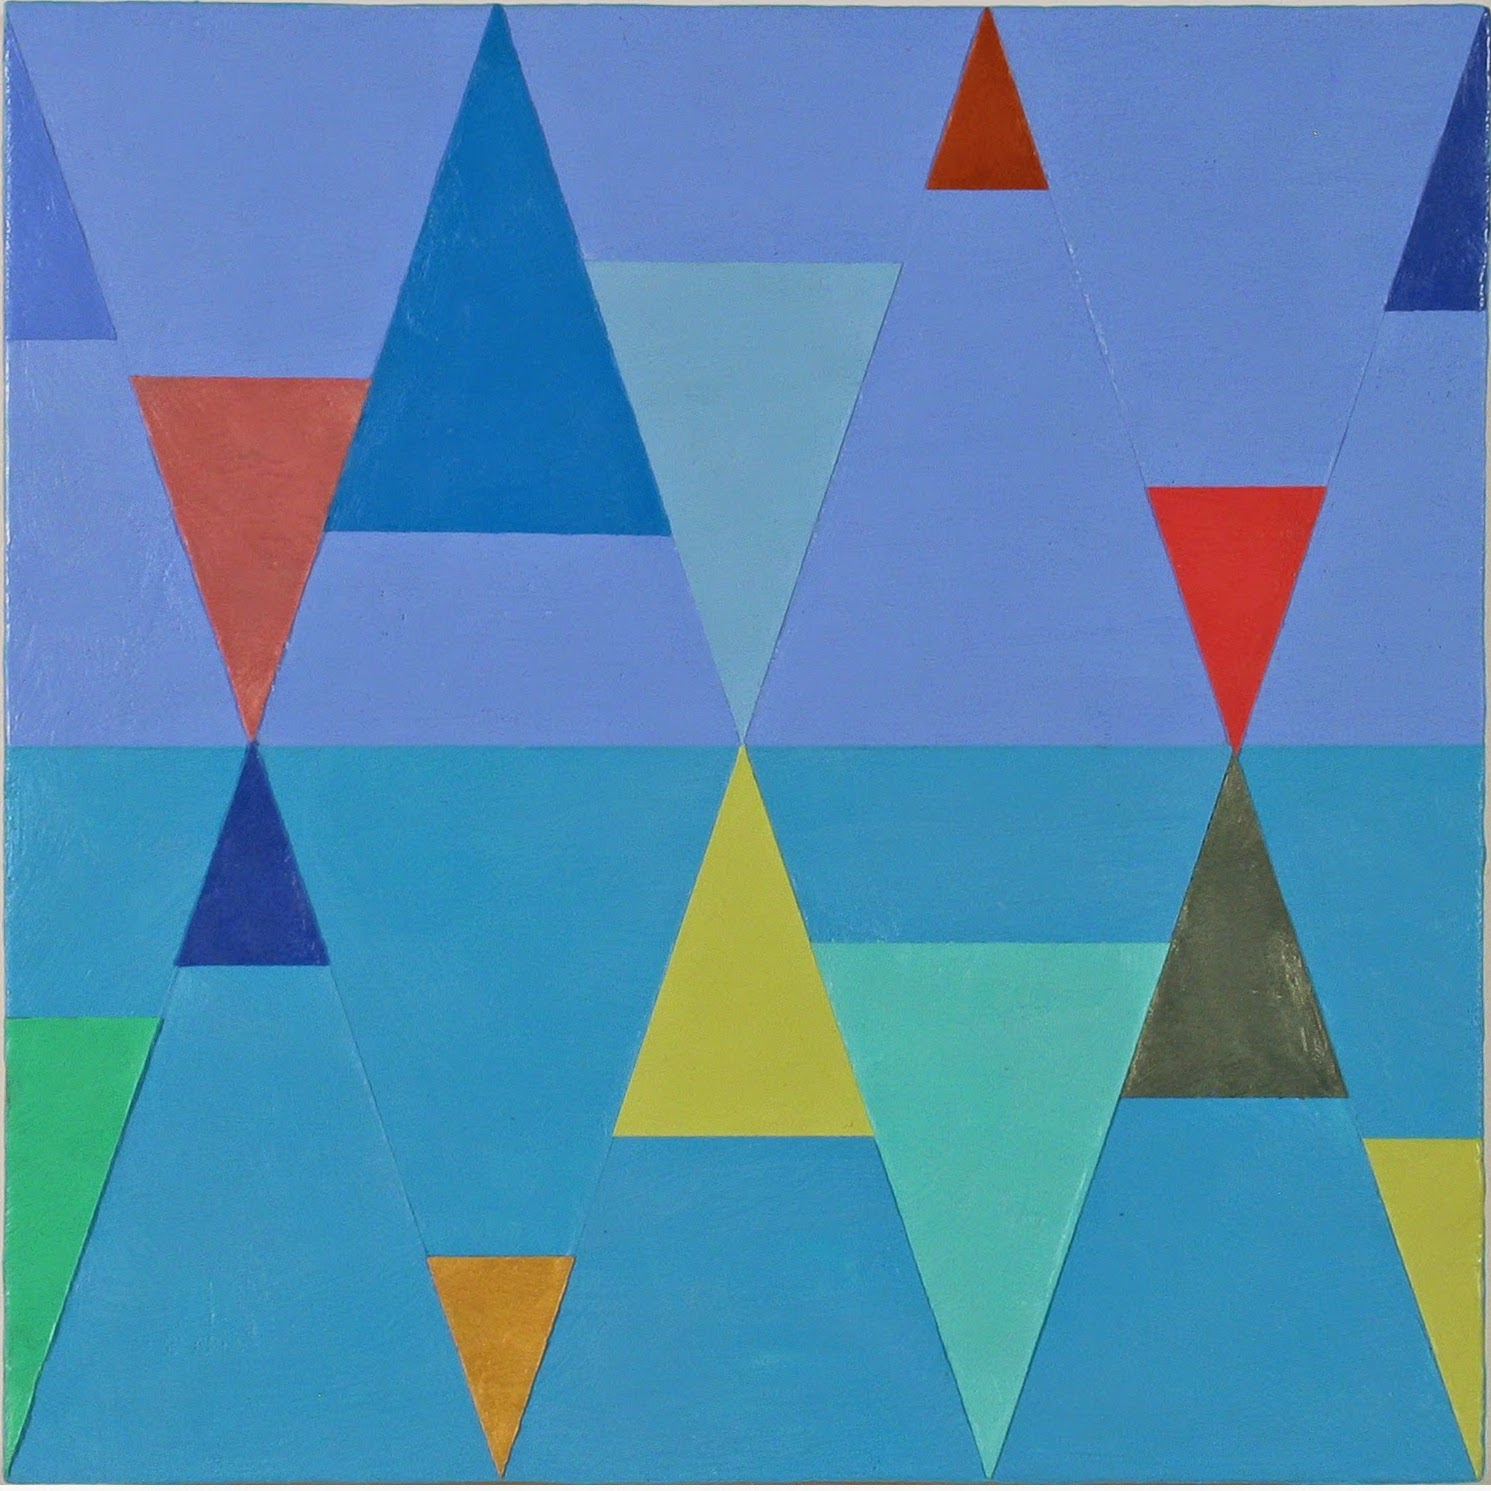 Joanne Mattera, Chromatic Geometry 21, 2014 (courtesy of the artist and Elizabet